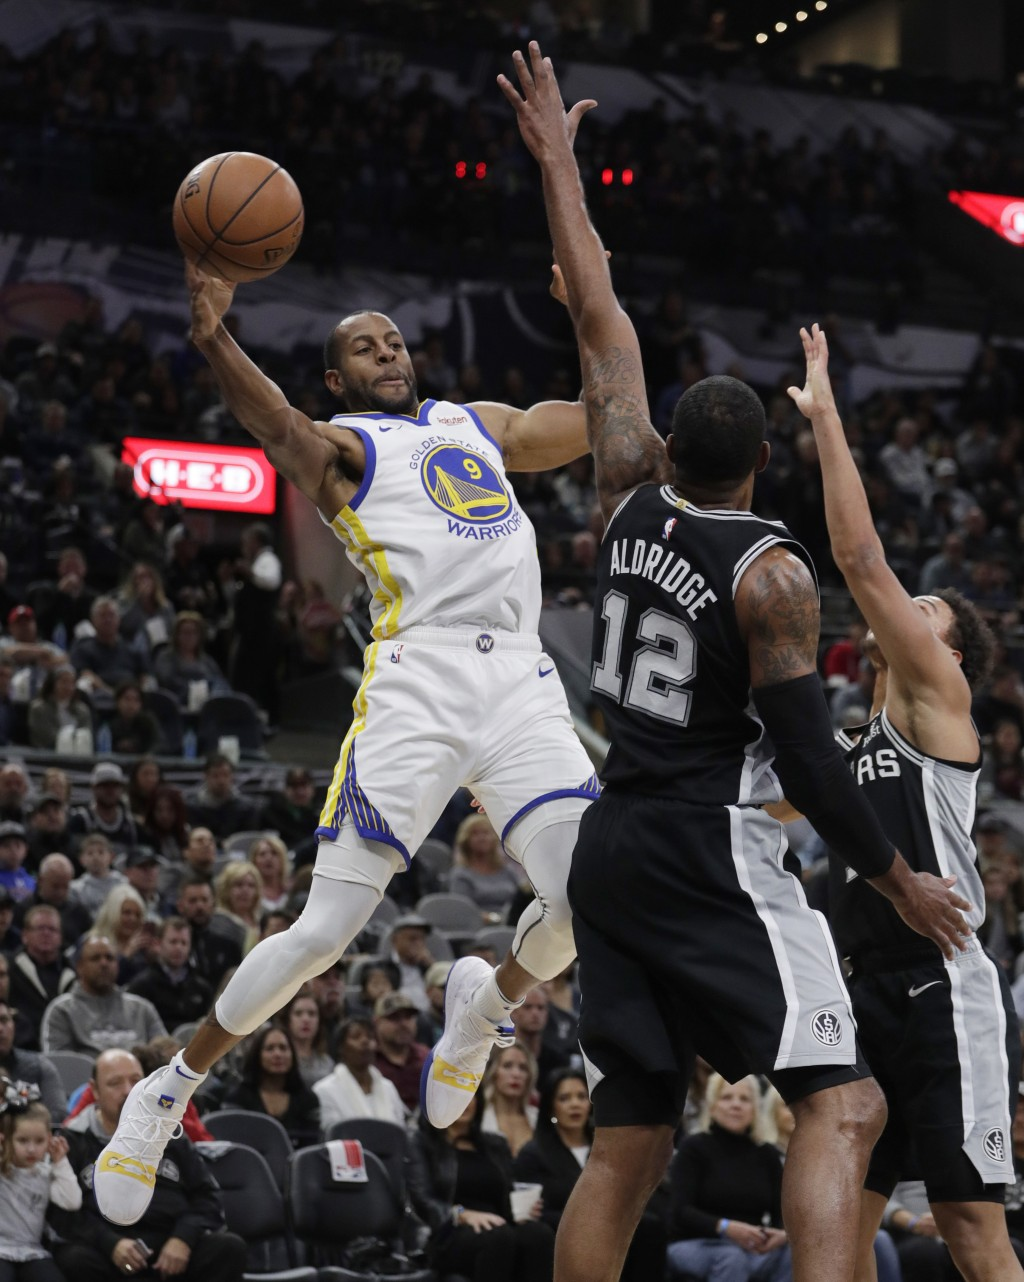 Golden State Warriors guard Andre Iguodala (9) looks to pass the ball as San Antonio Spurs forward LaMarcus Aldridge (12) defends during the first hal...